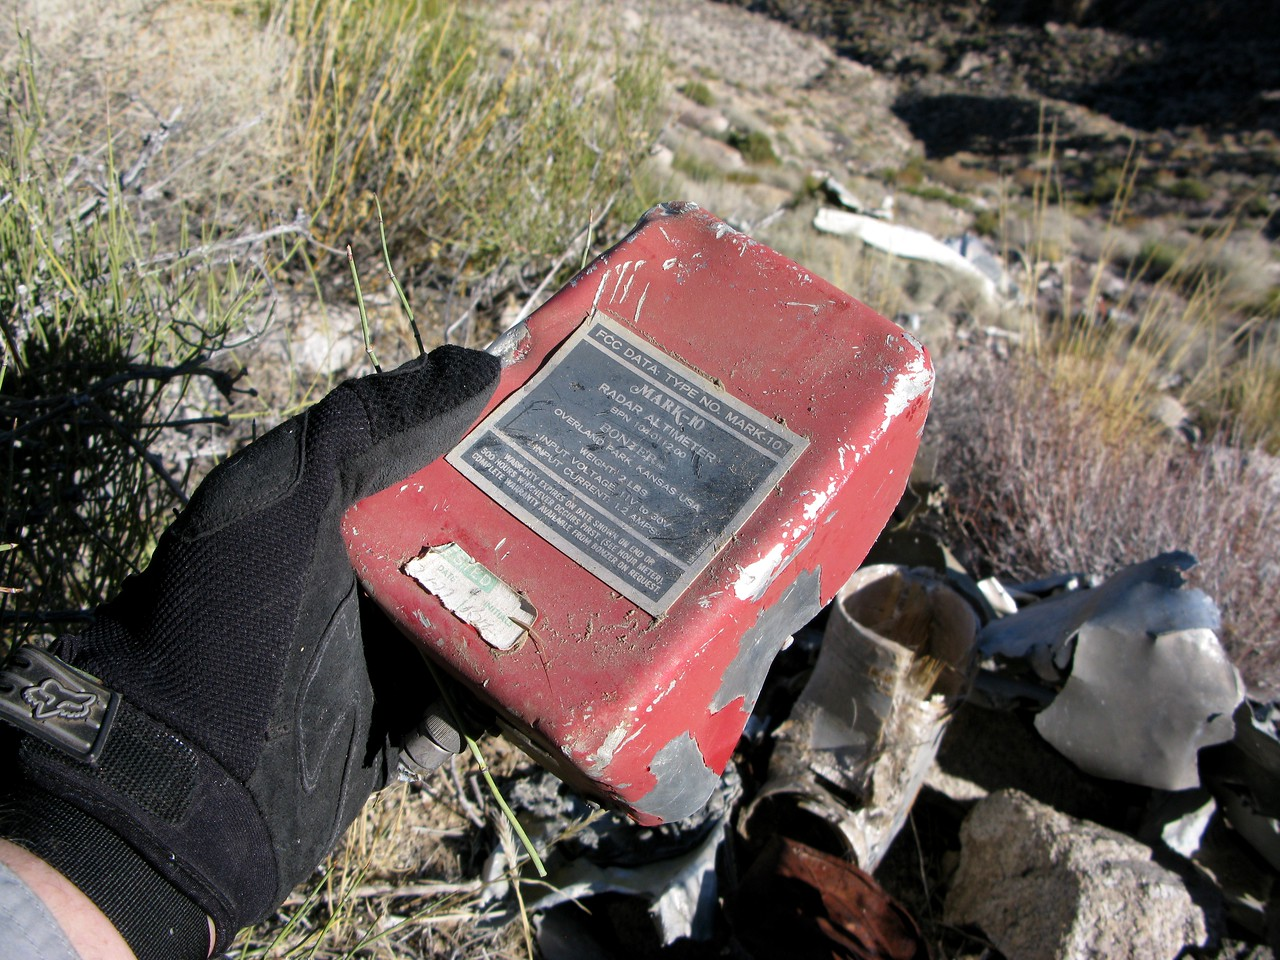 Other components of the Bonzer Mark 10 Radar Altimeter System included the system processor unit.